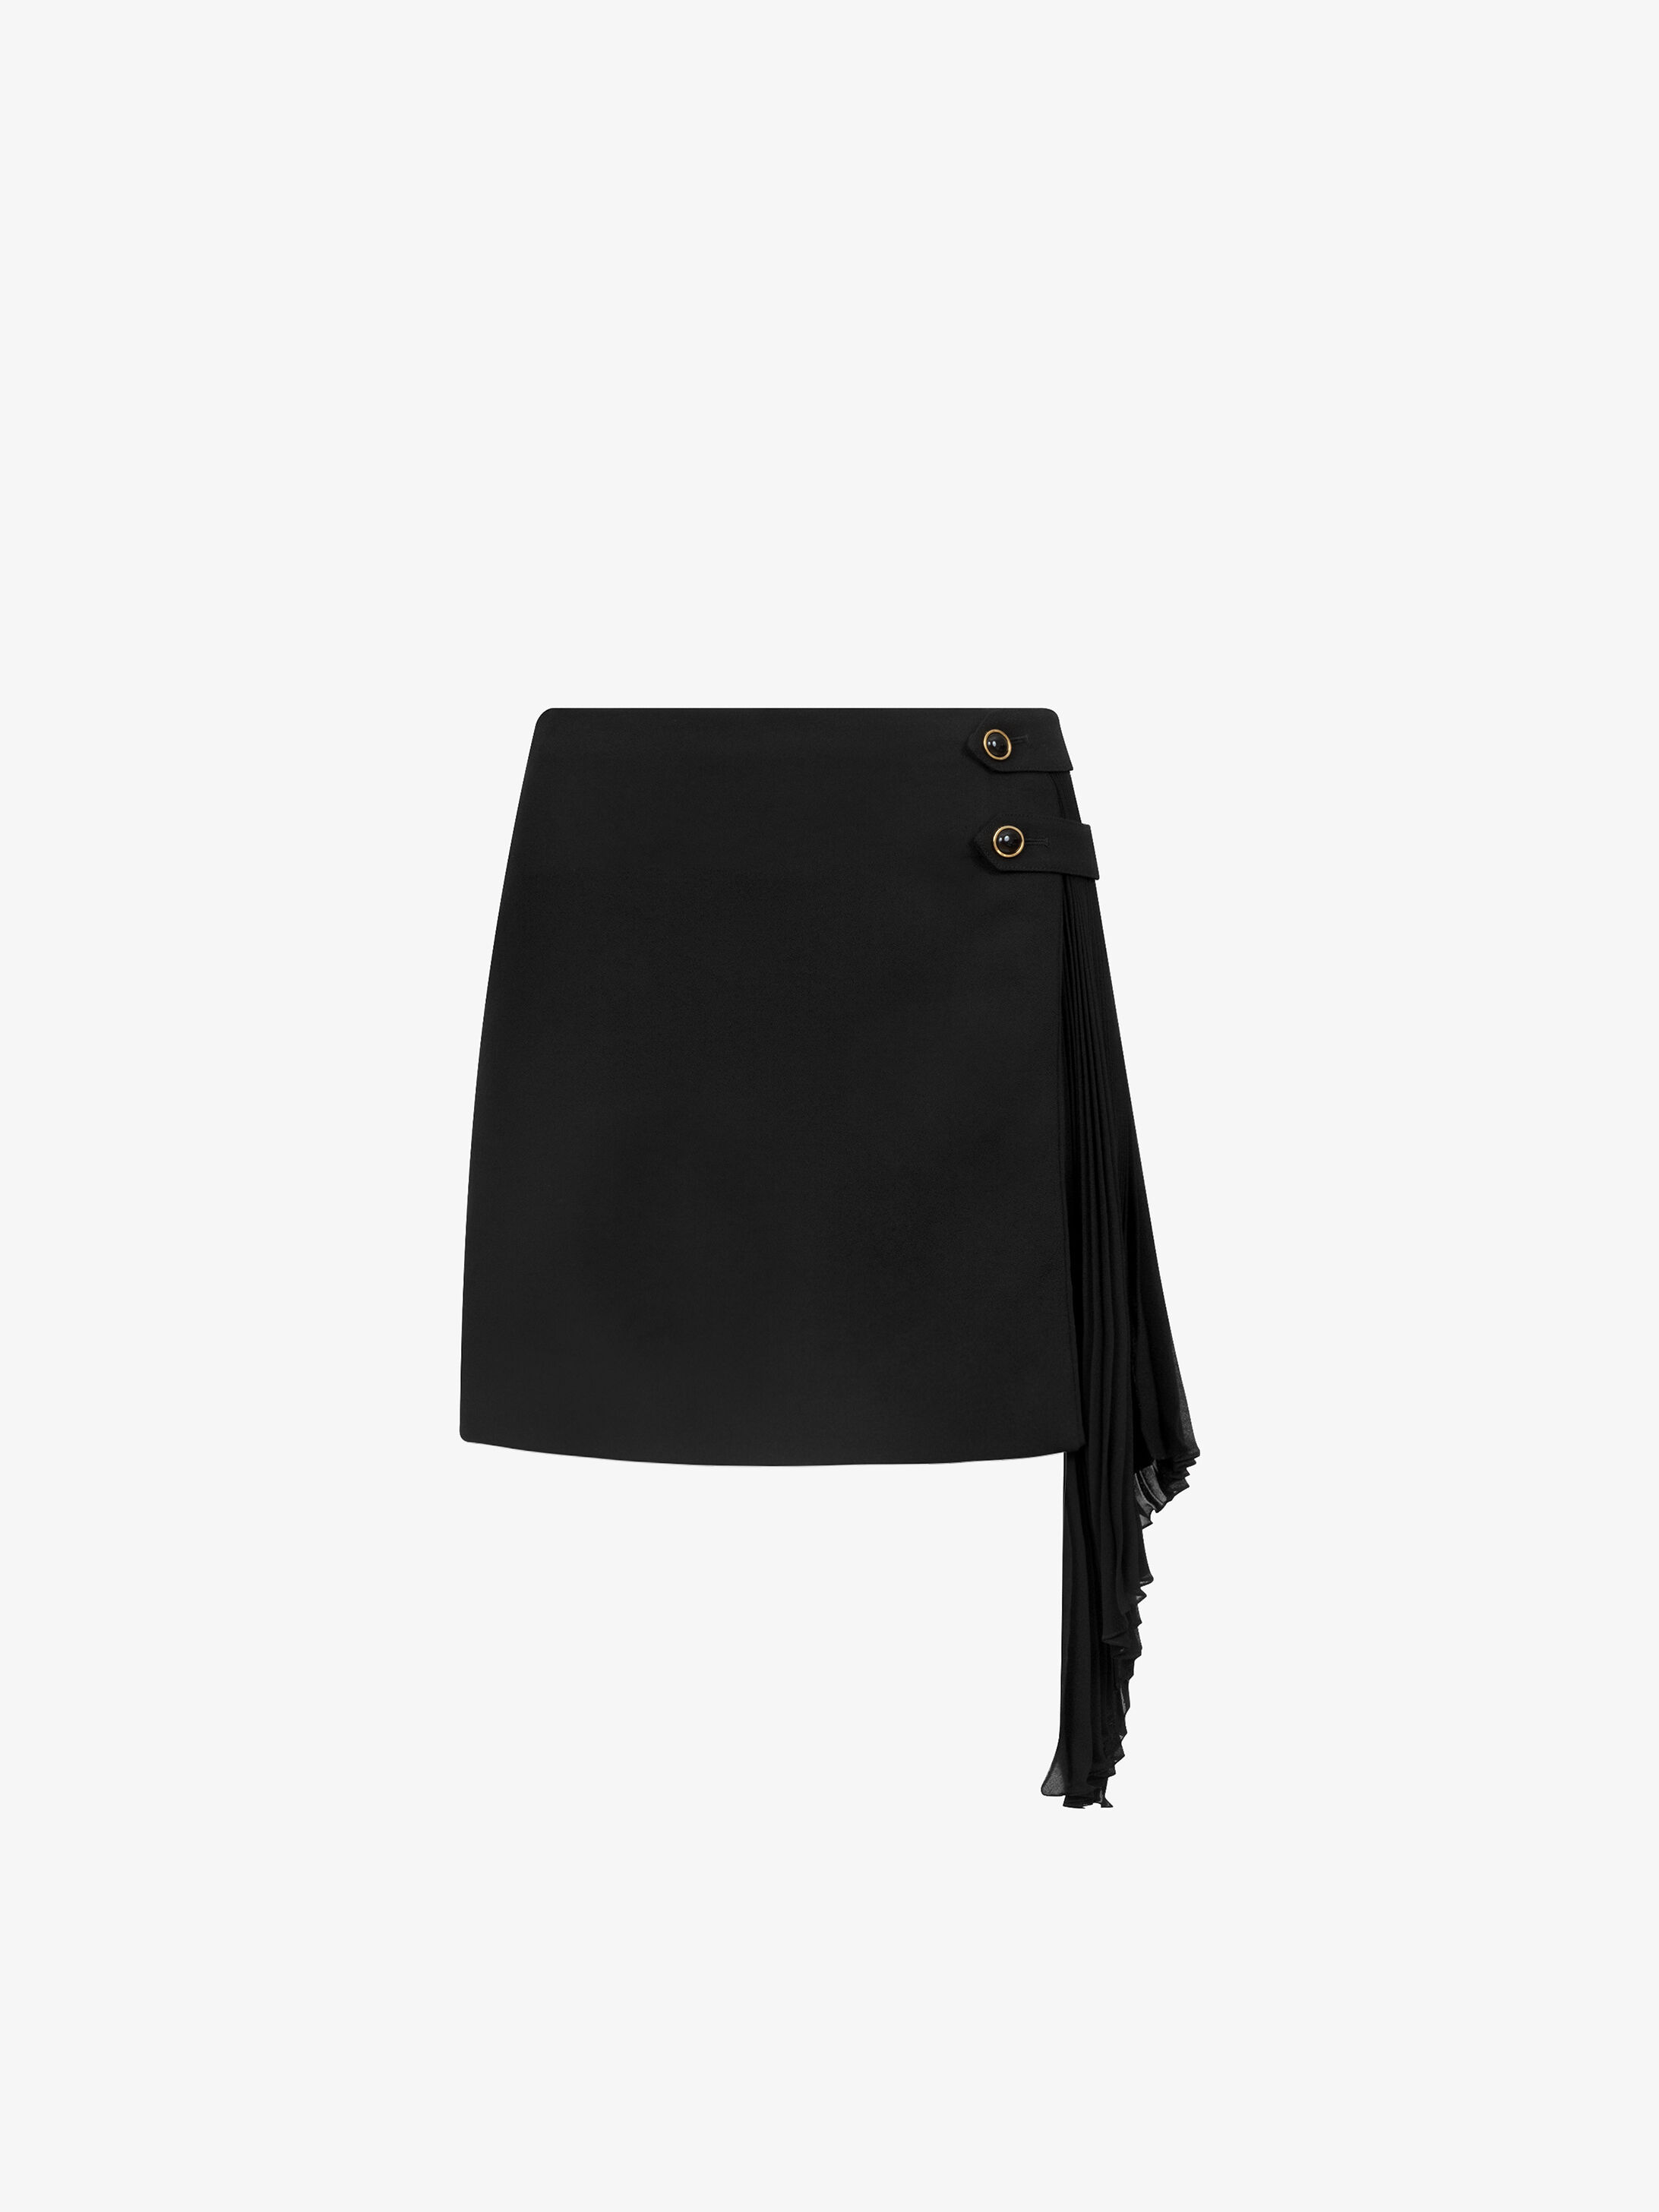 874ce7608e Women's Skirts collection by Givenchy. | GIVENCHY Paris